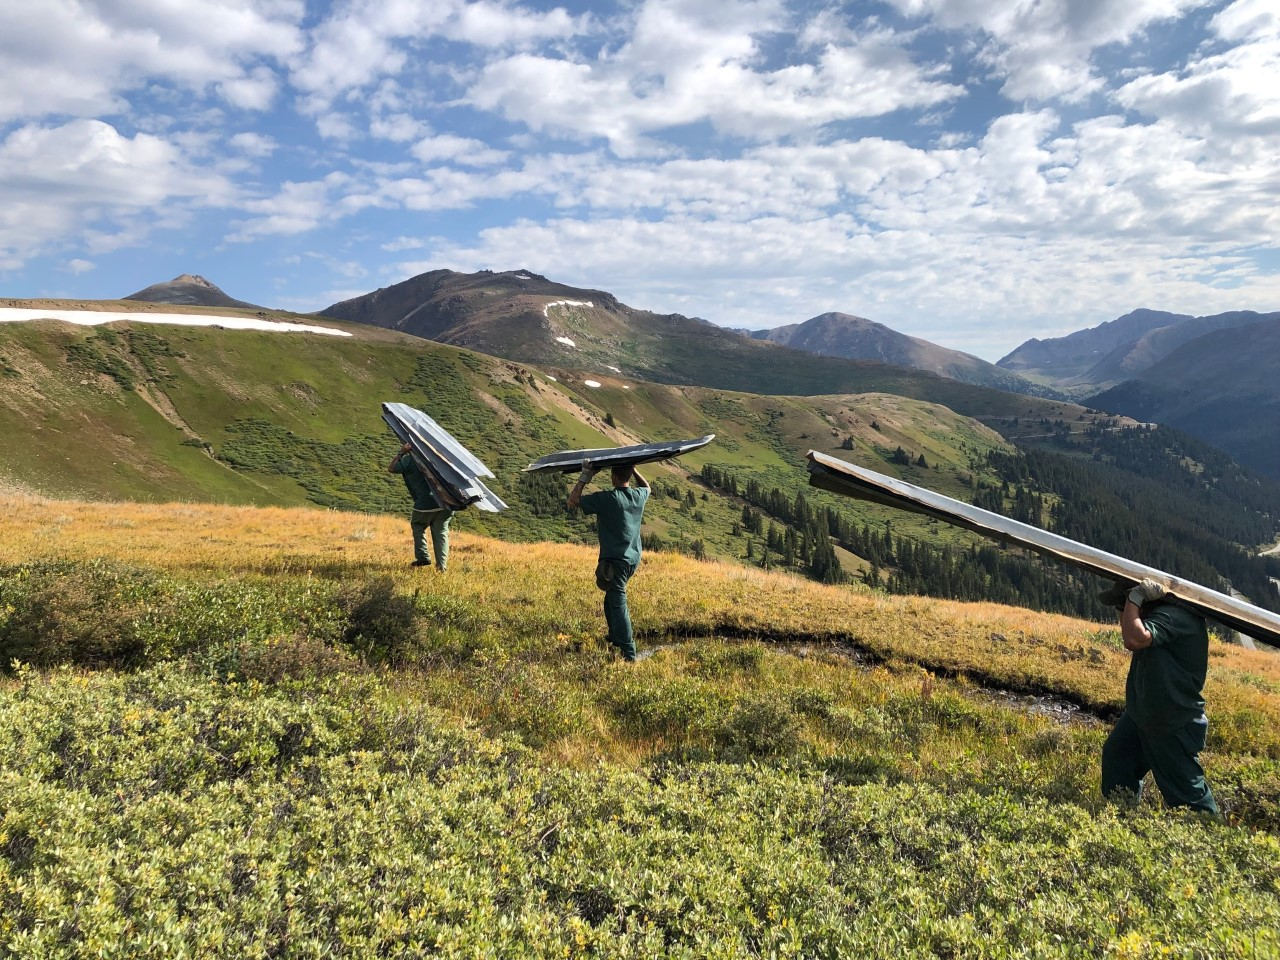 Removing discarded snow fence—12' aluminum panels—from the Mountain Boy area of the Collegiate Peaks Wilderness